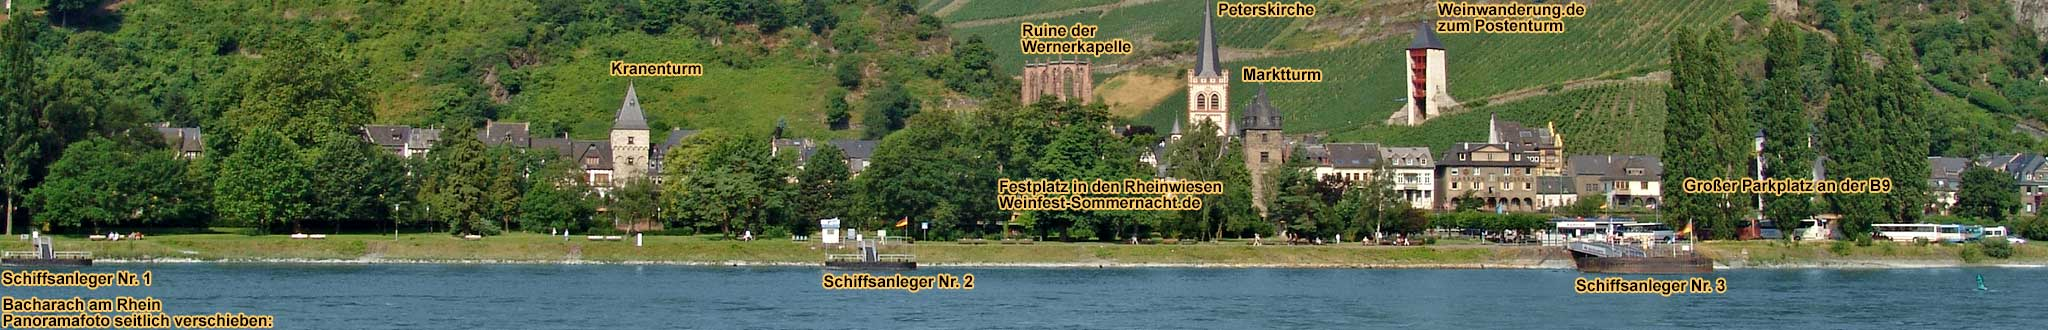 Panorama picture of Bacharach on the Rhine River with boat landing stages